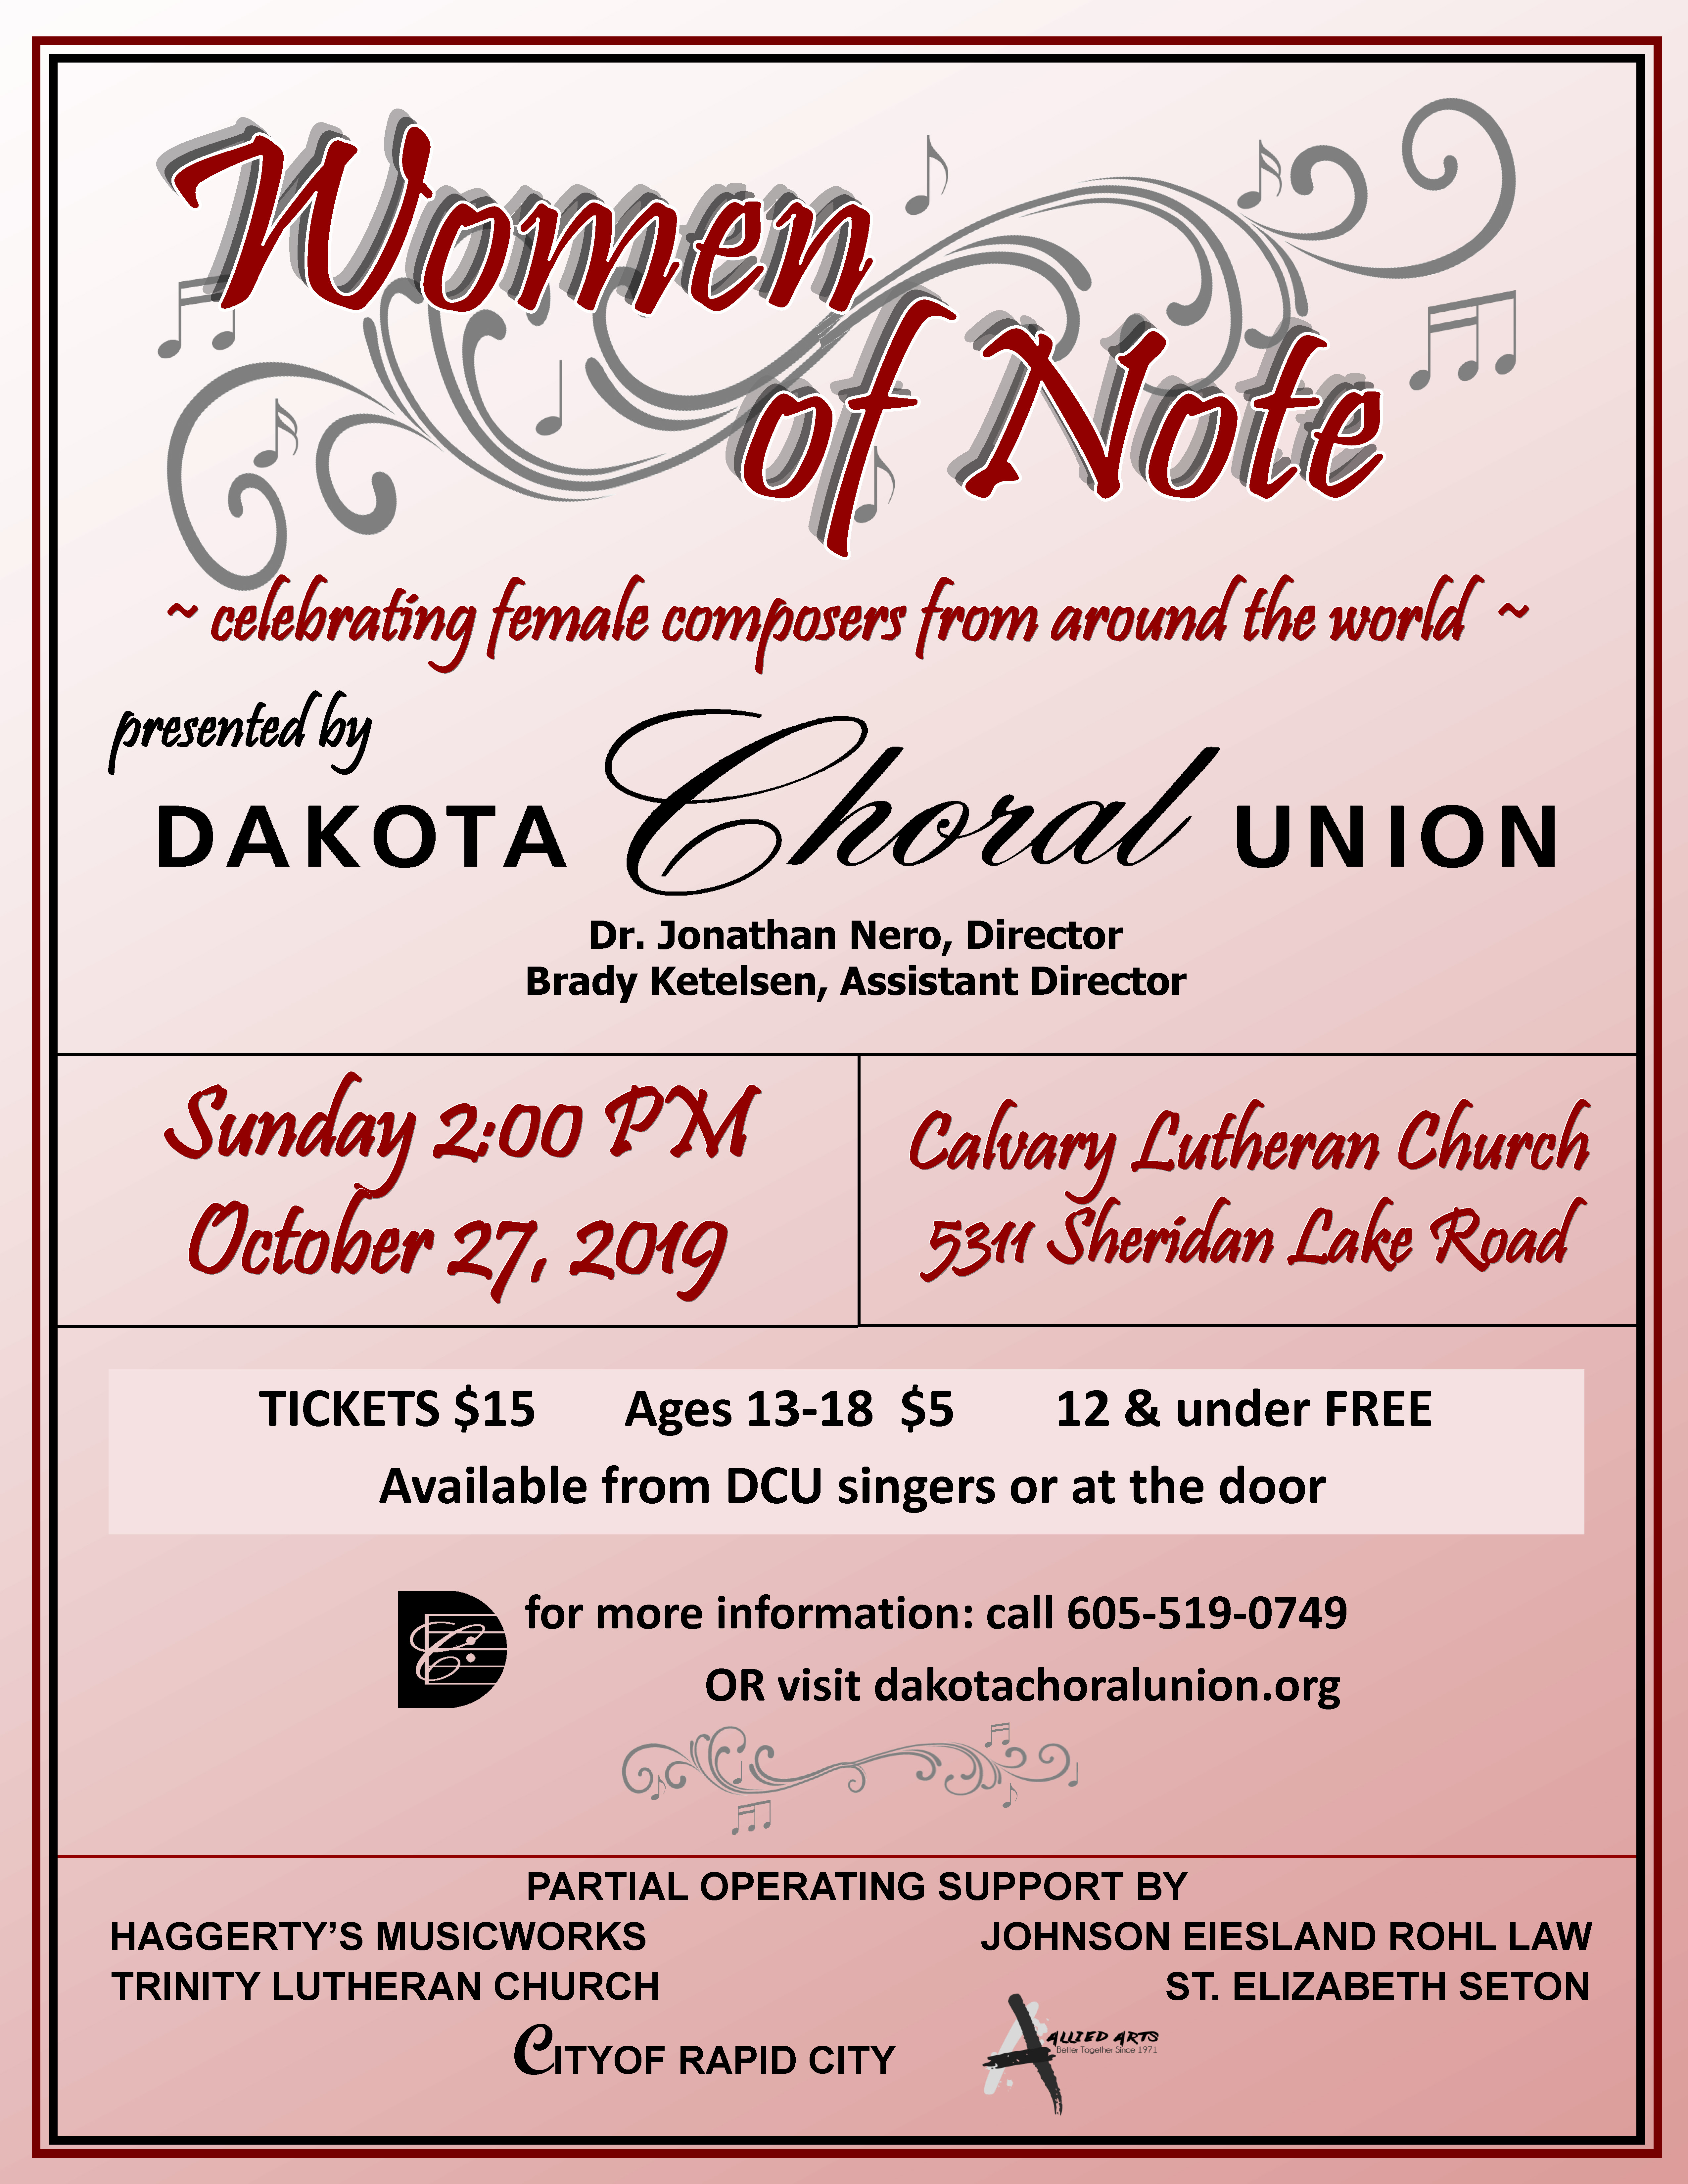 Dakota Choral Union